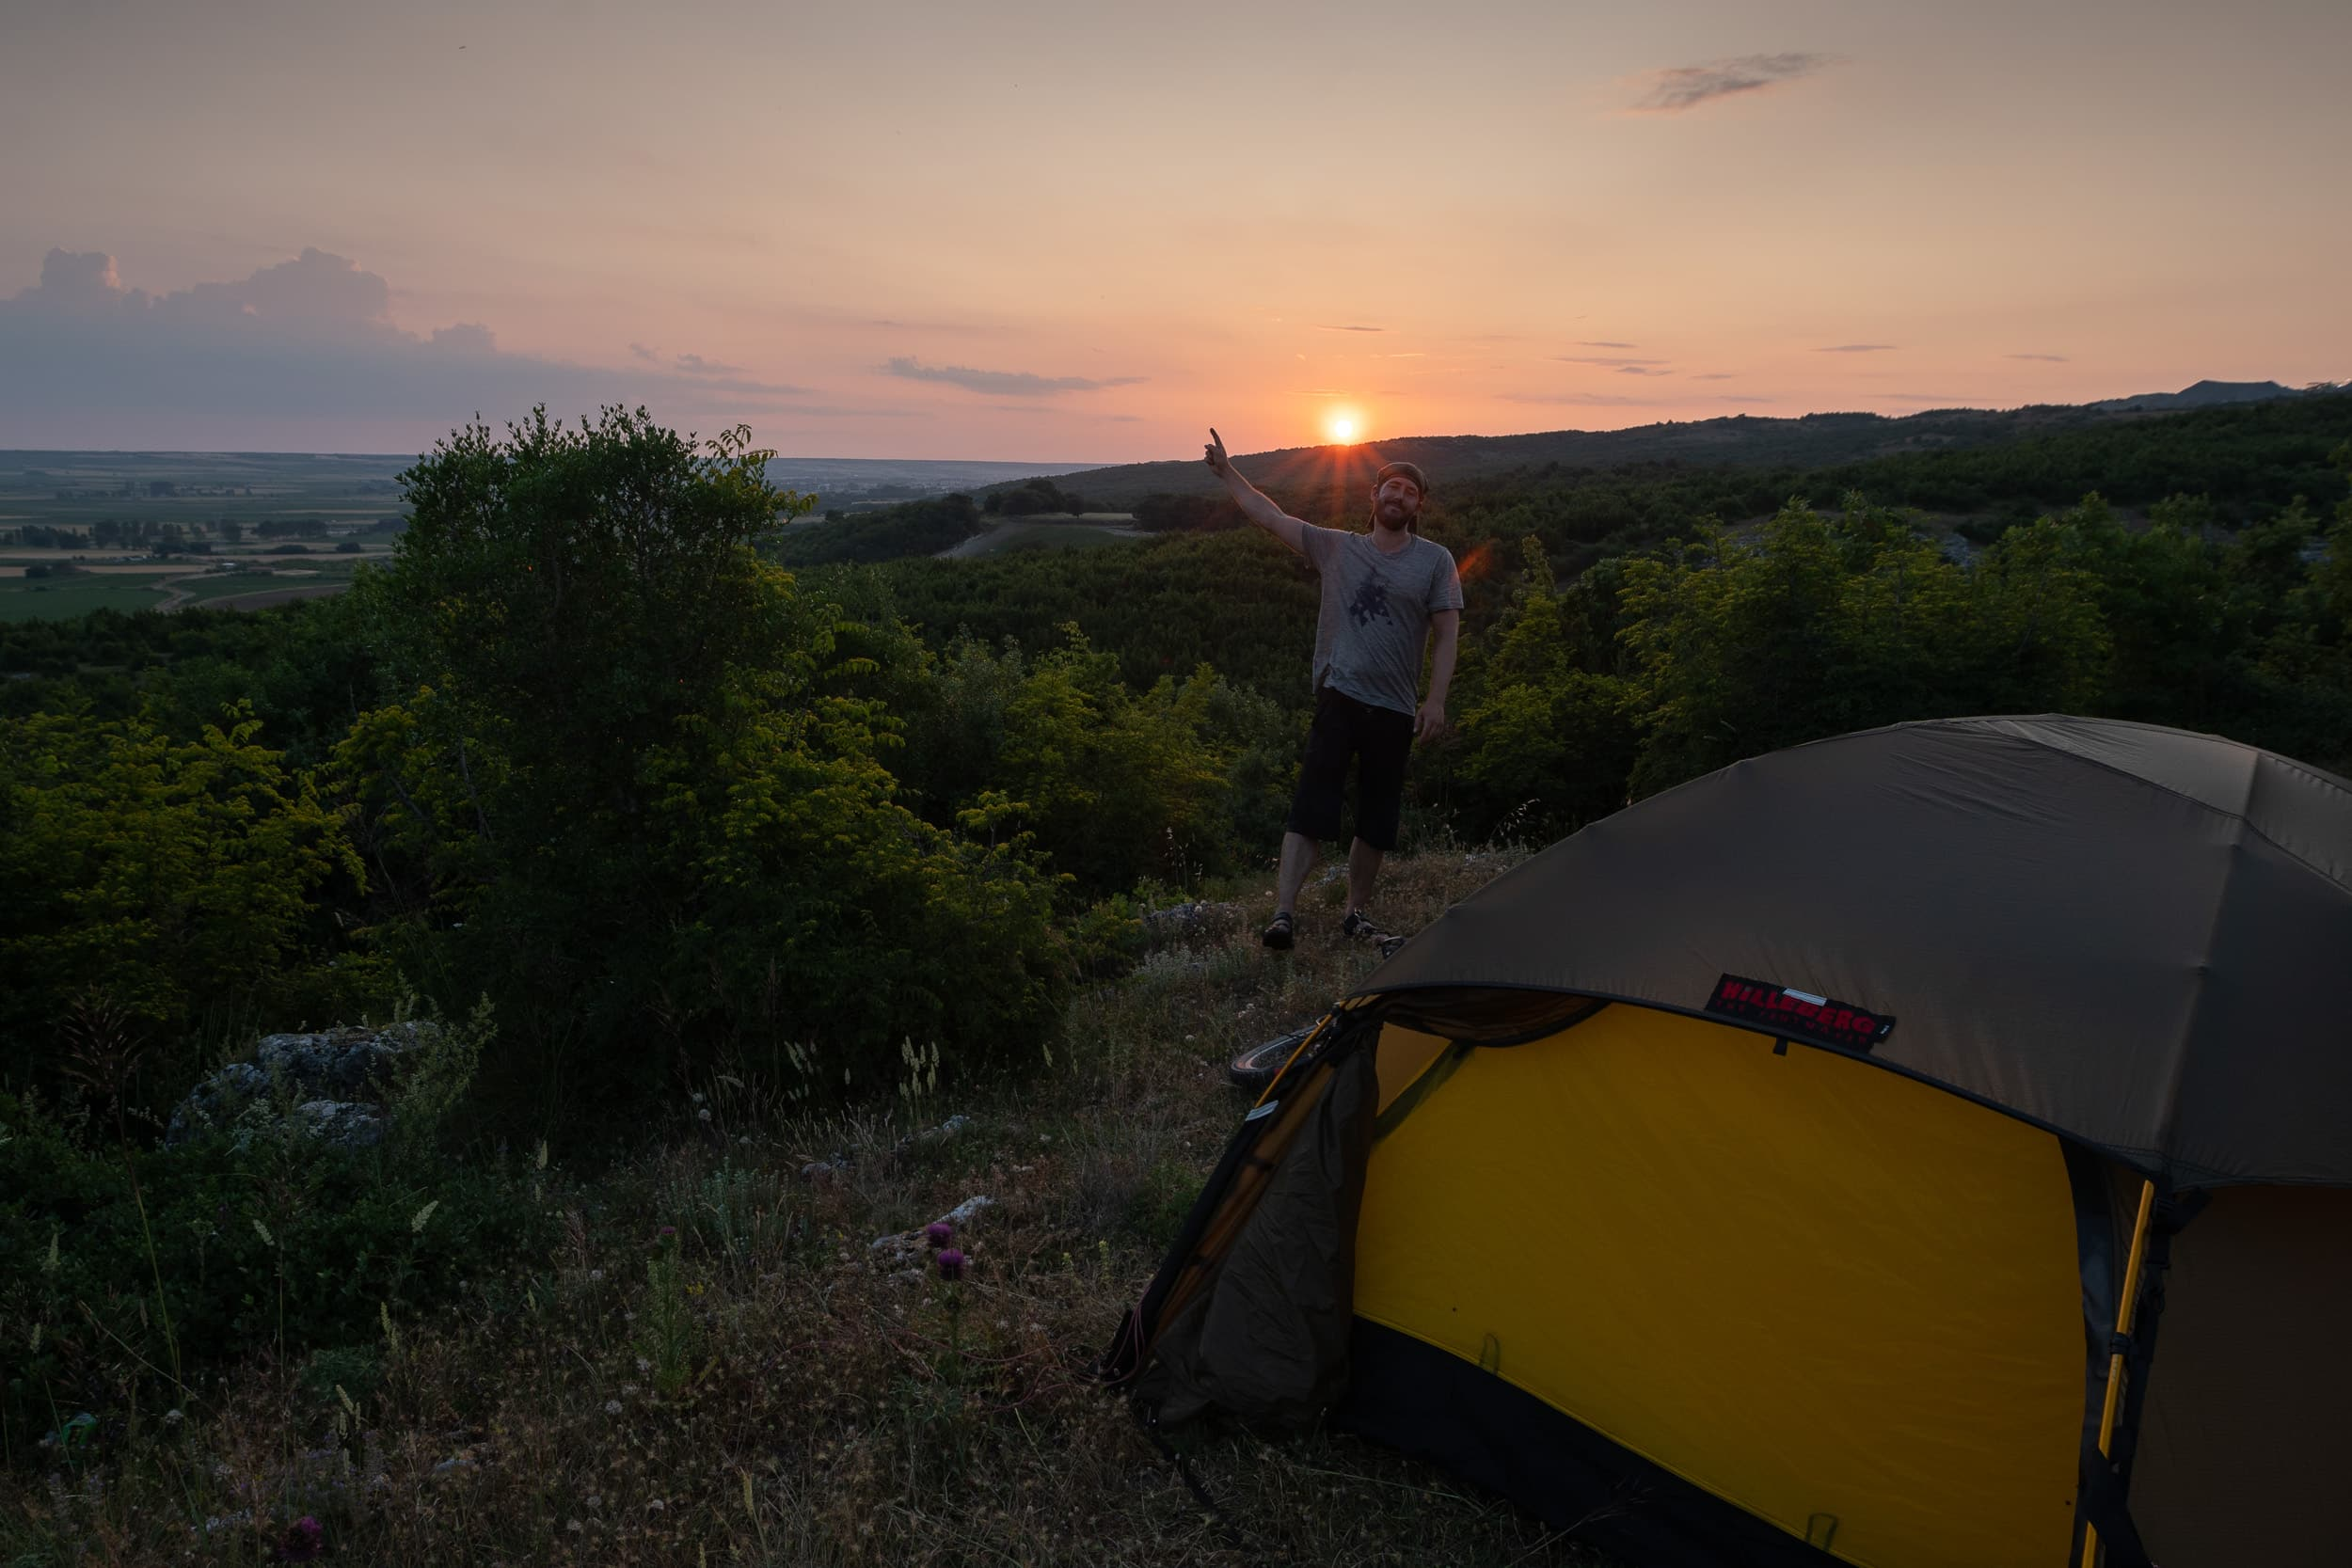 wildcamping at sunset in Turkey